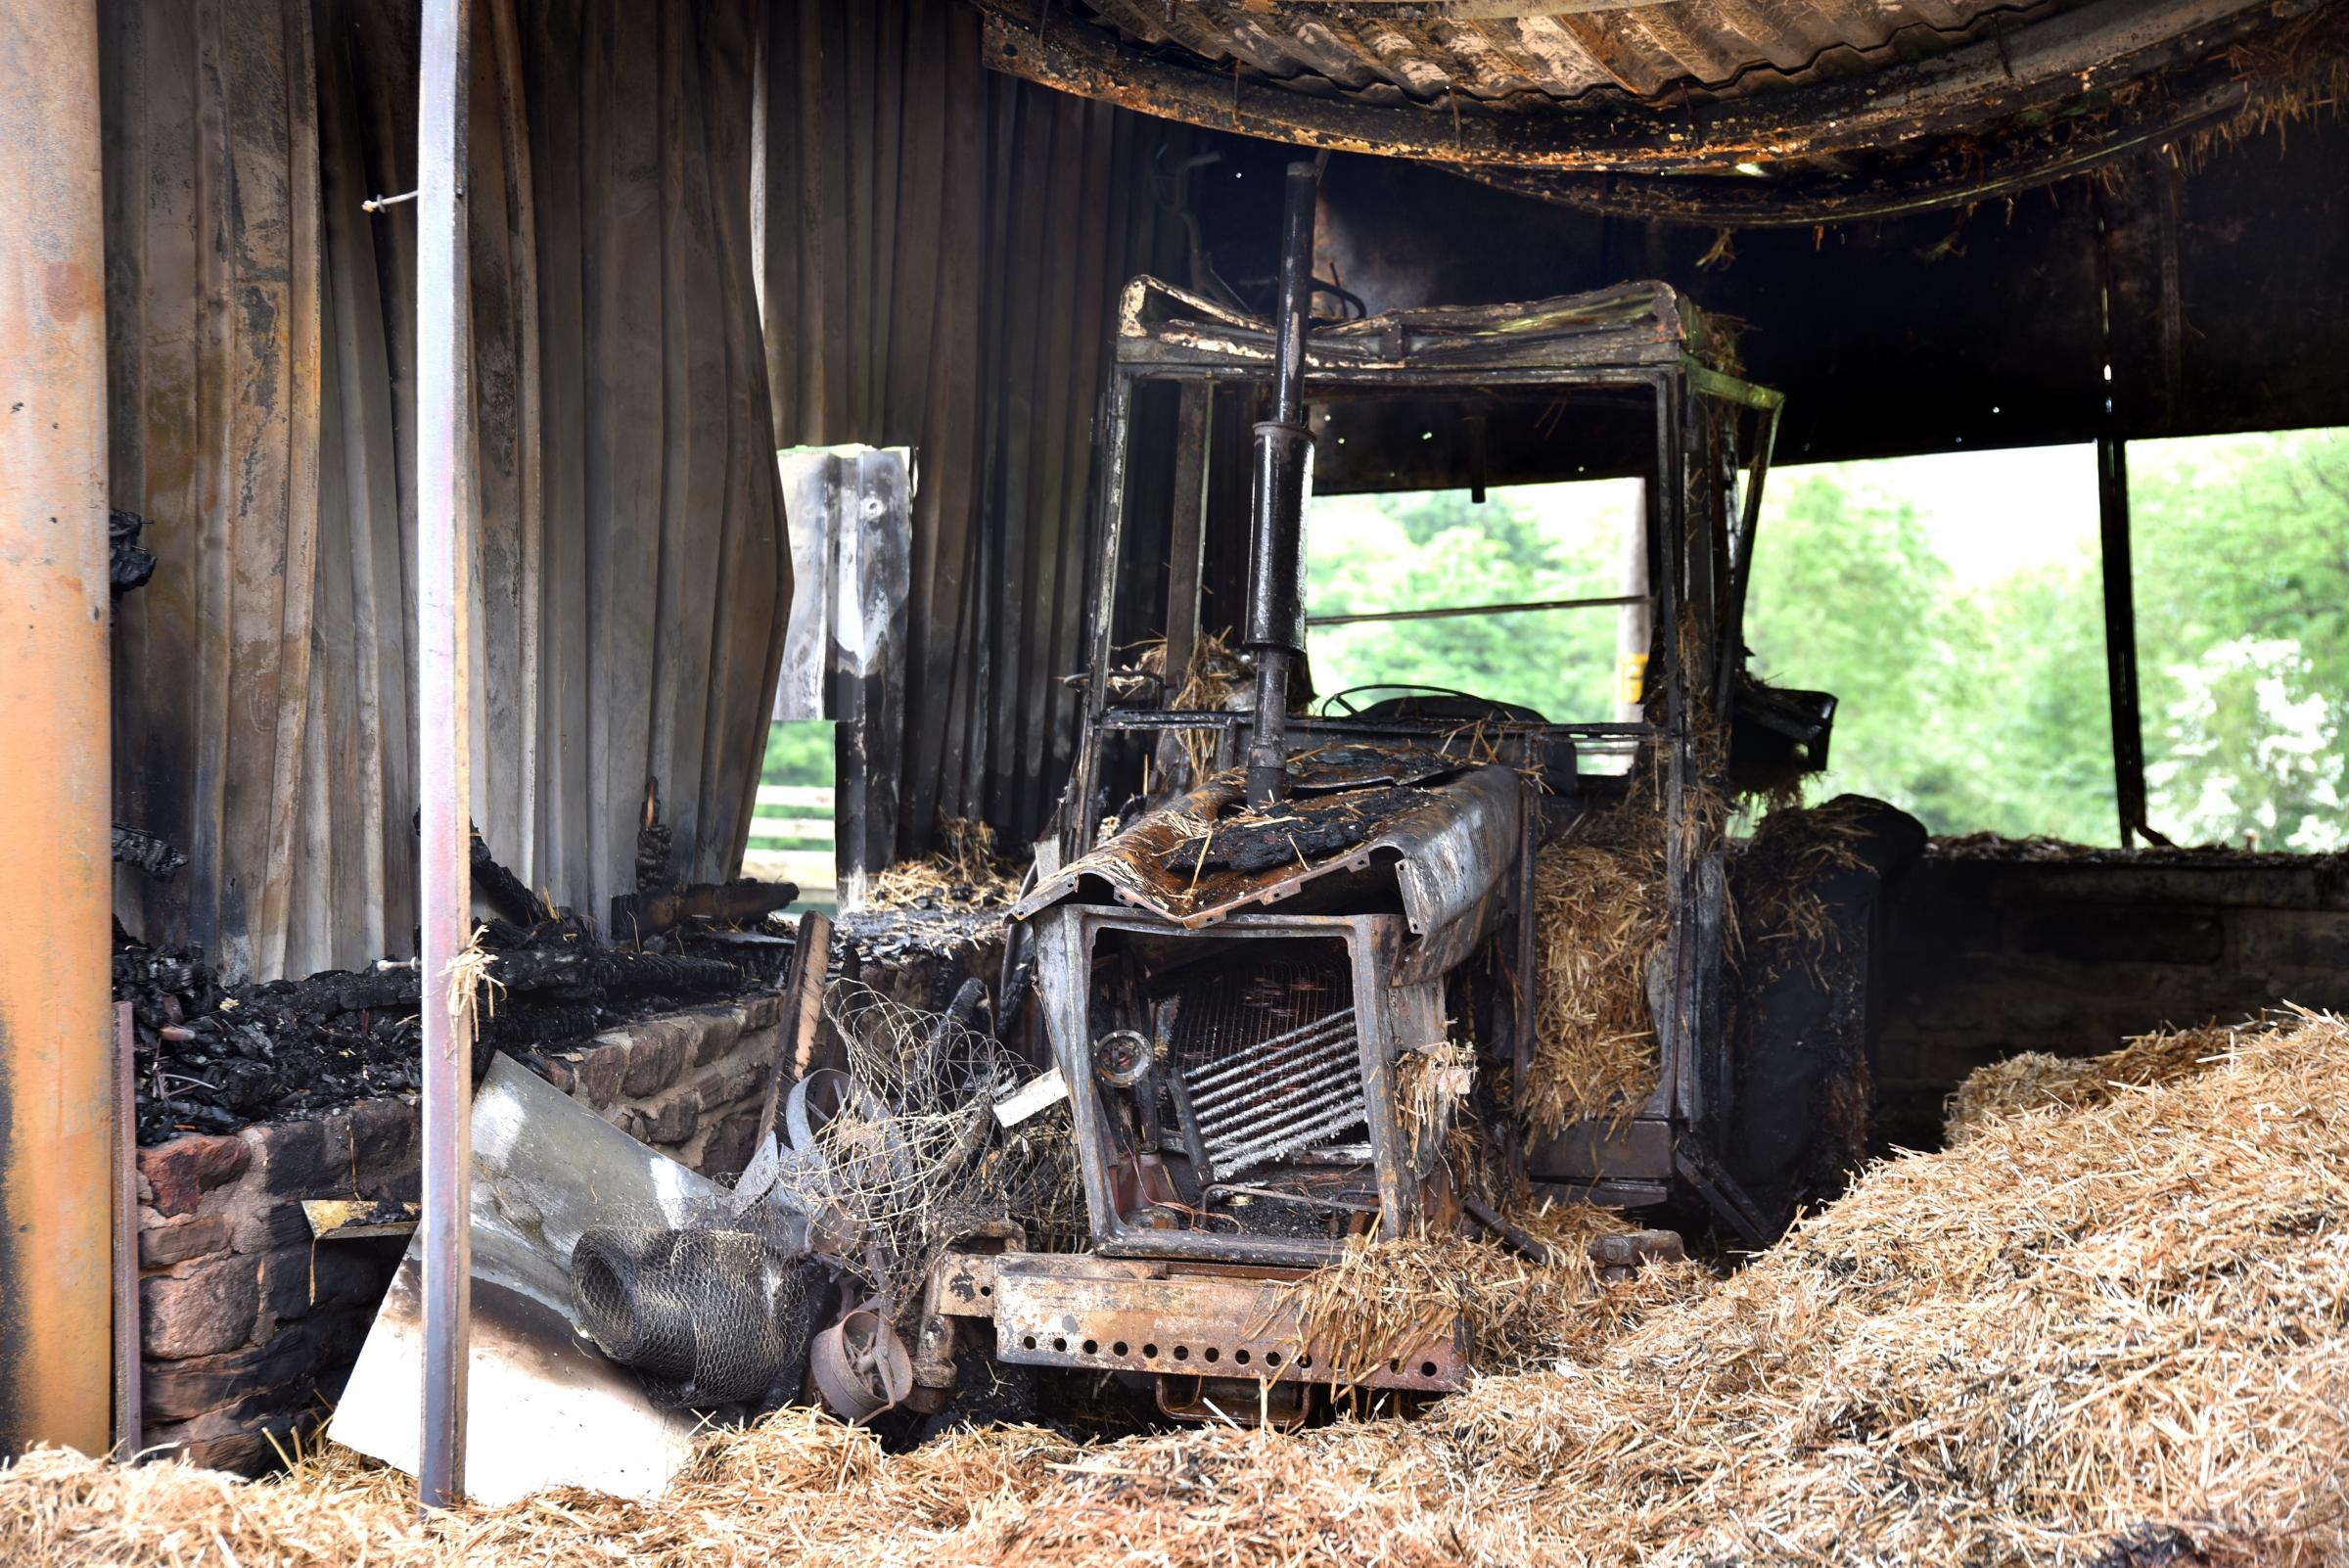 The scene at Parkhill Farm, Ellar Carr Road, Thackley, after a suspected arson attack